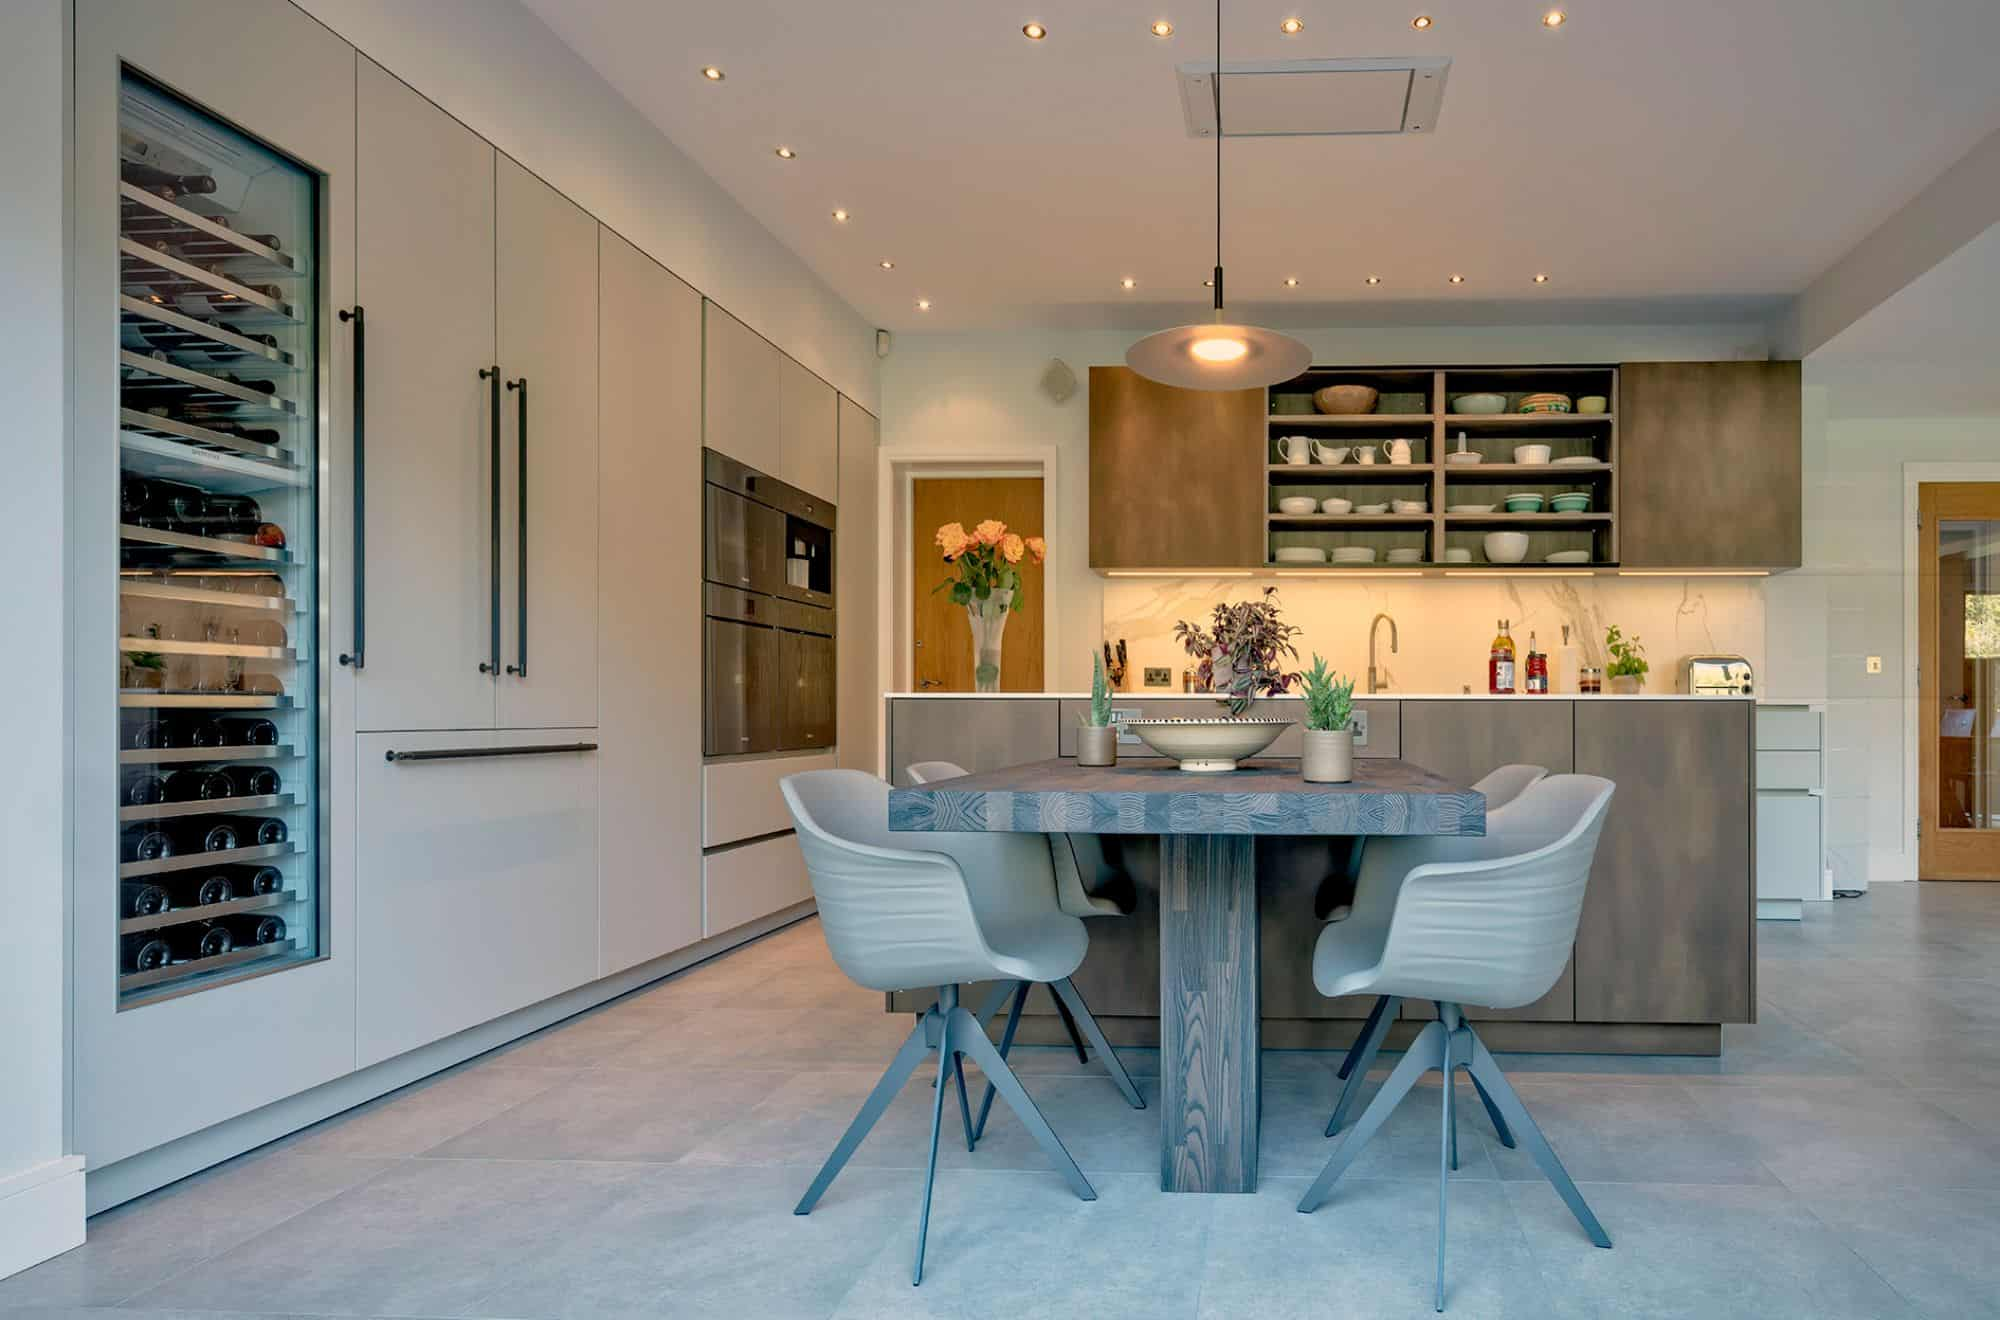 warm, inviting, and modern small kitchen with built-in dining table